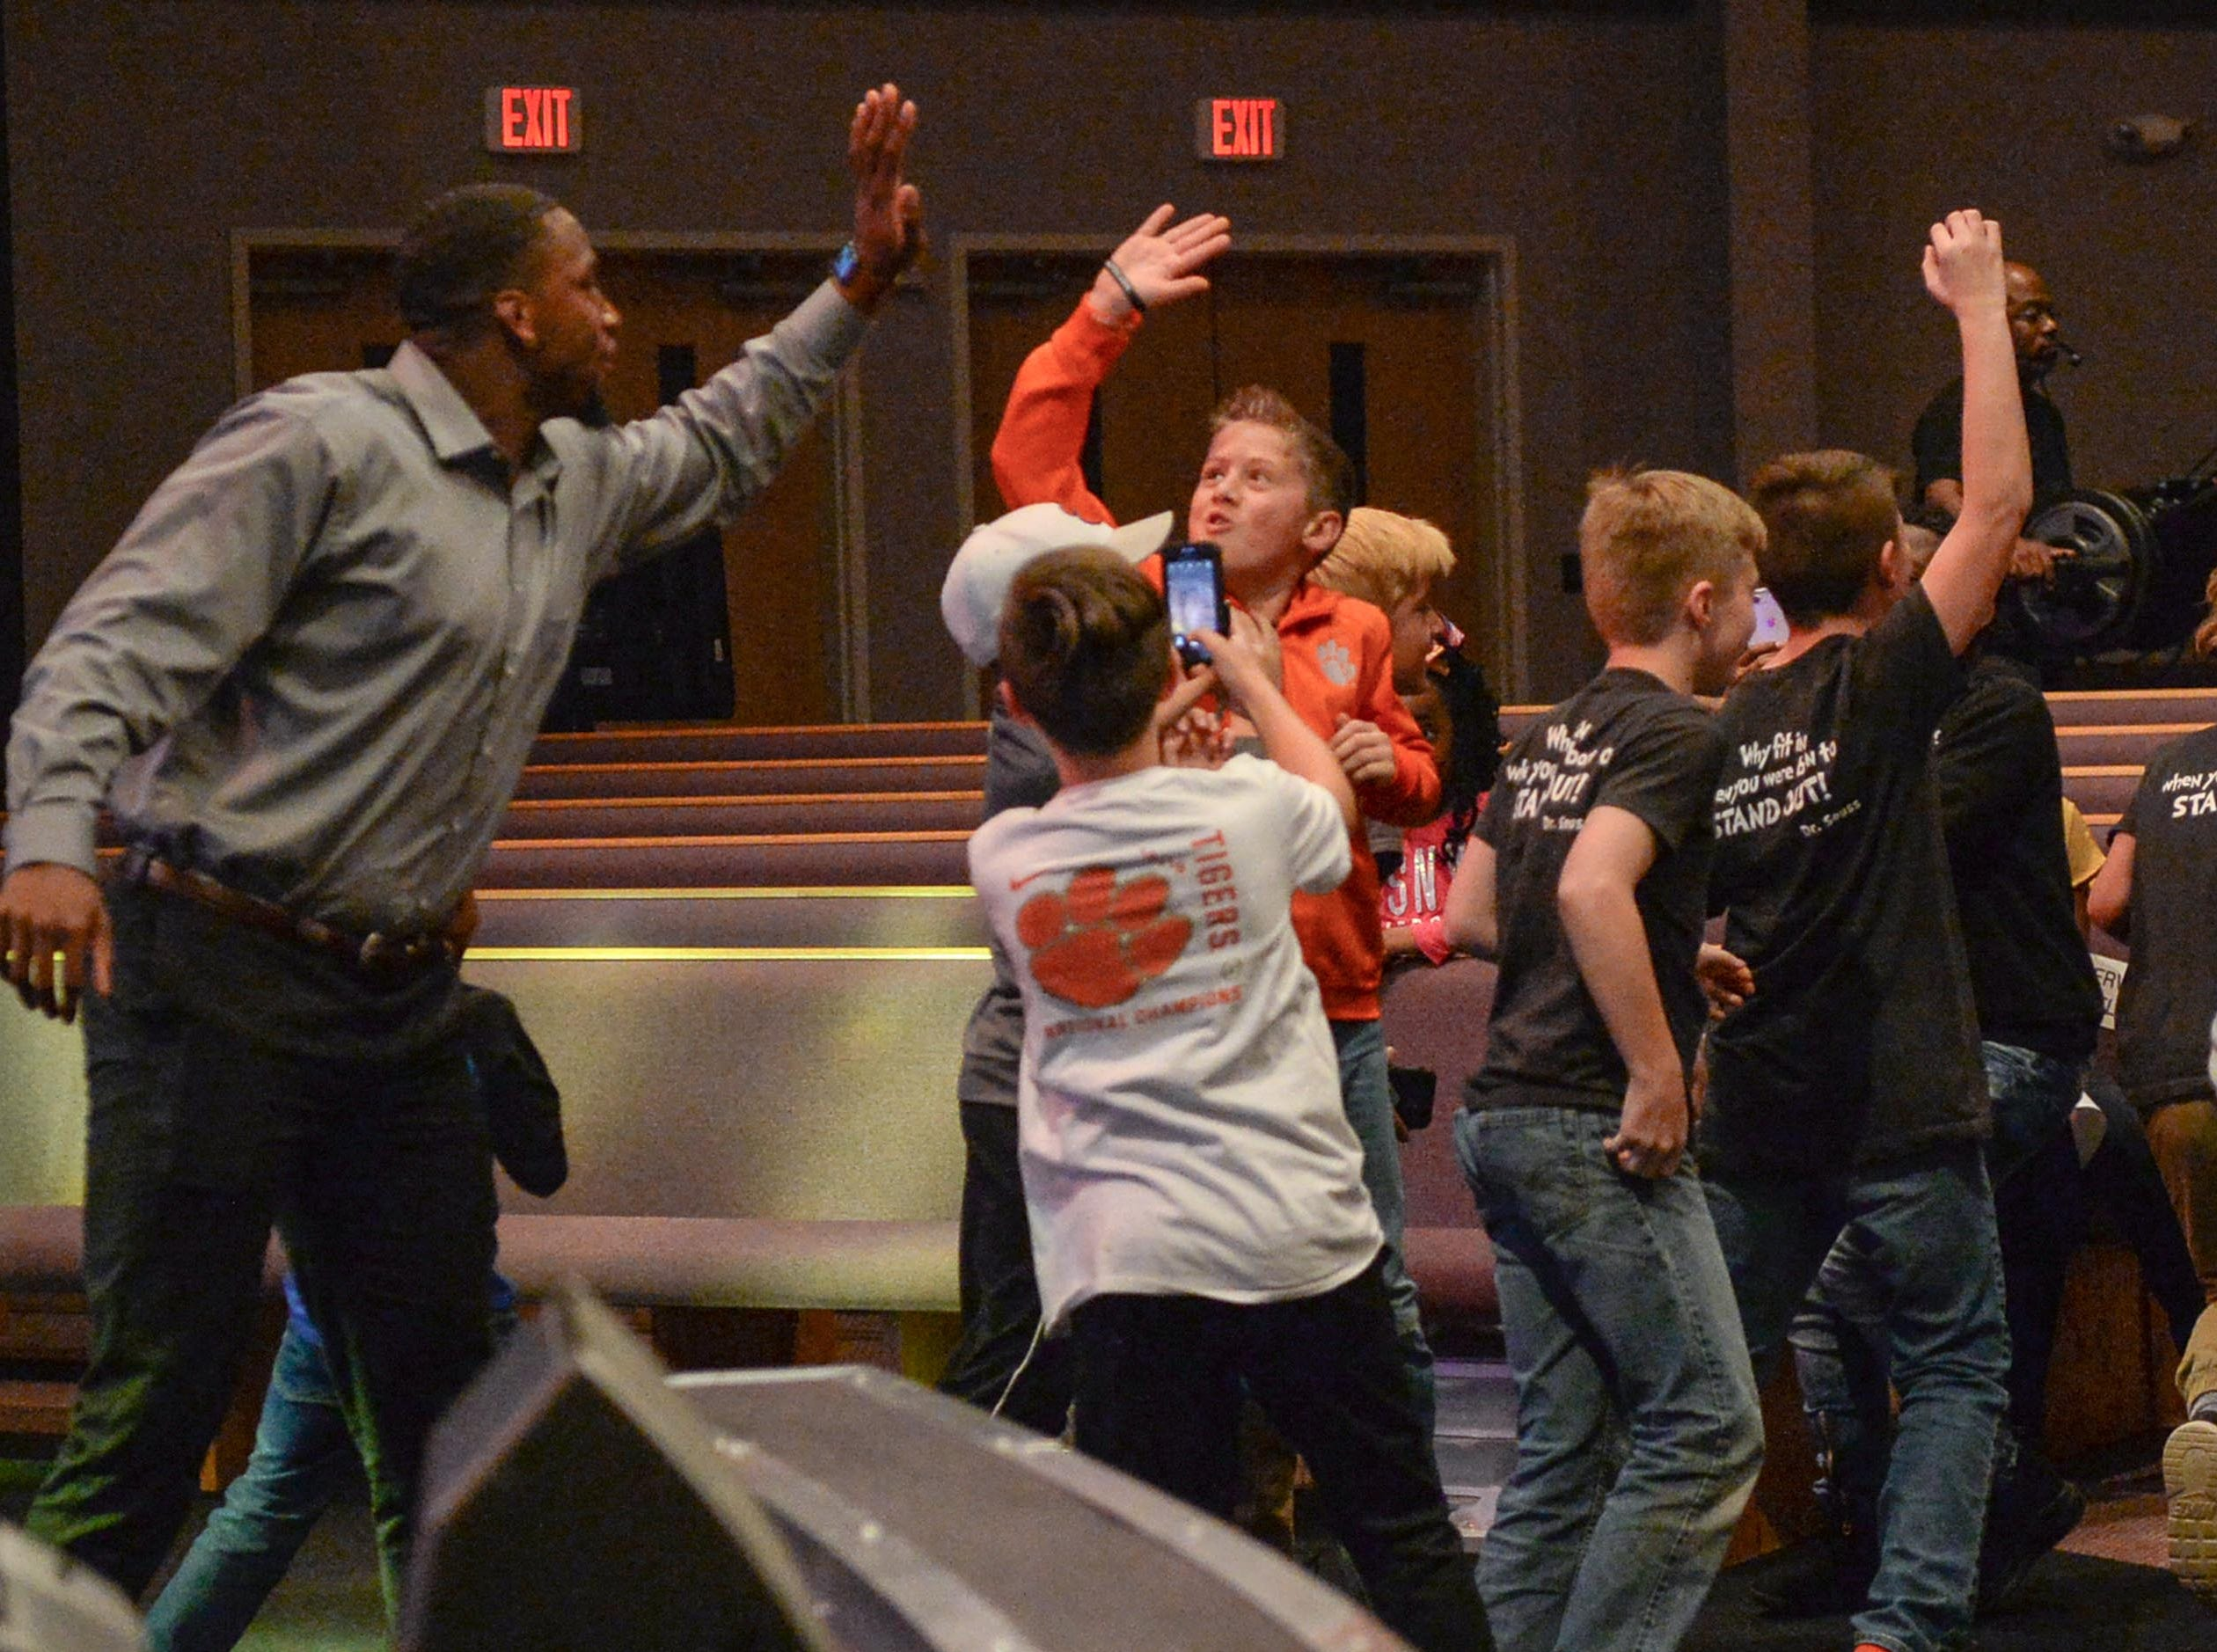 Former Clemson Tiger Clelin Ferrell, left, gives a high five to students attending the Coaches 4 Character event at Relentless Church in Greenville Tuesday.